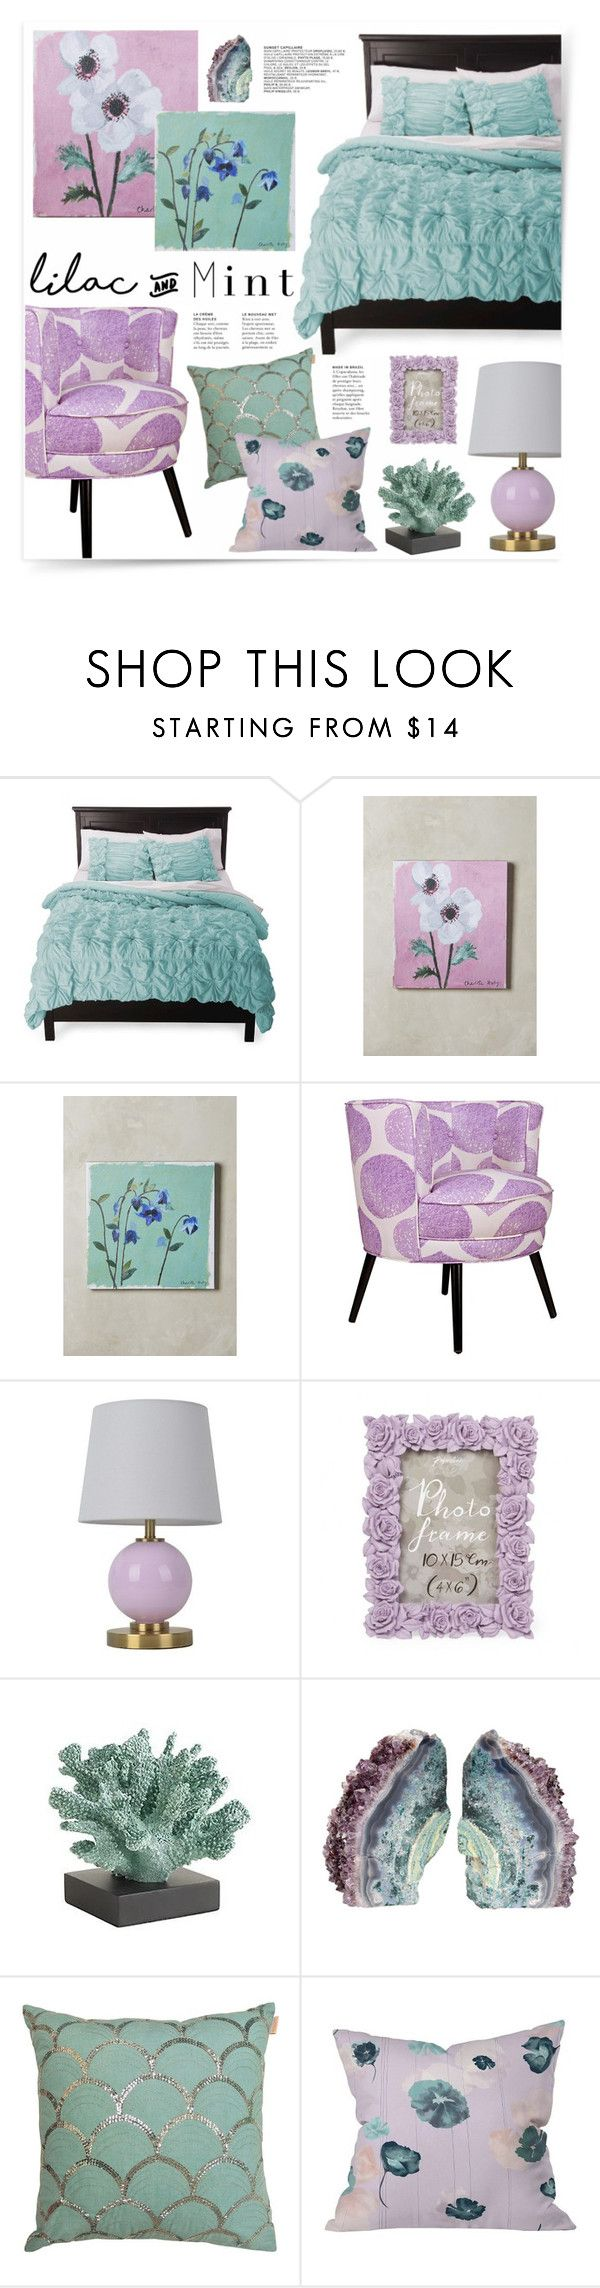 """Lilac & Mint Bedroom"" by katrinaalice ❤ liked on Polyvore featuring interior, interiors, interior design, home, home decor, interior decorating, See by Chloé, Rizzy Home, Charlotte Hardy and angelo:HOME"